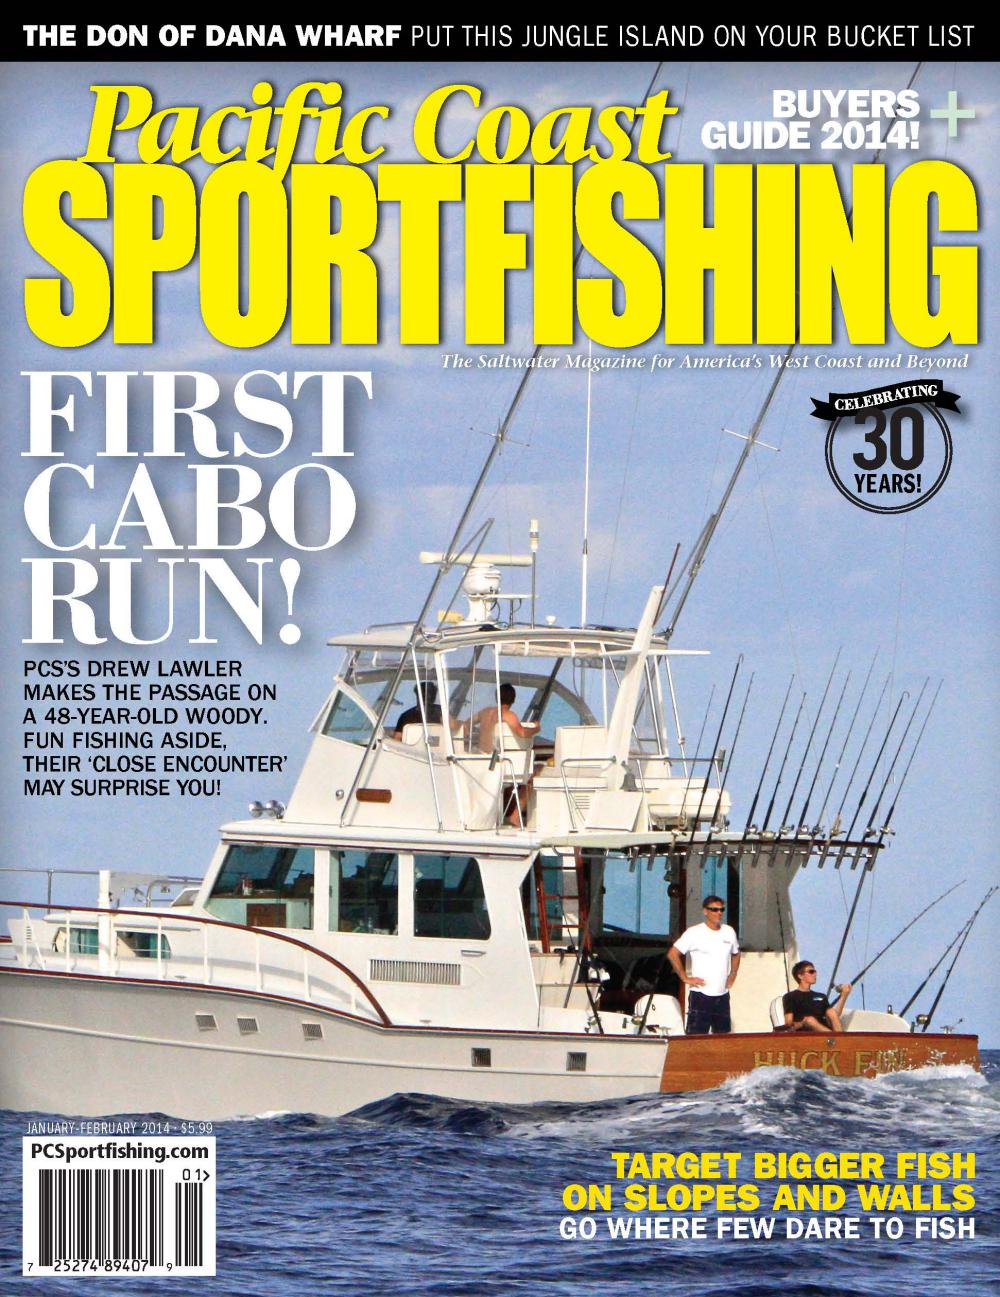 First Cabo Run Aboard 56' Huckins Sportfisherman